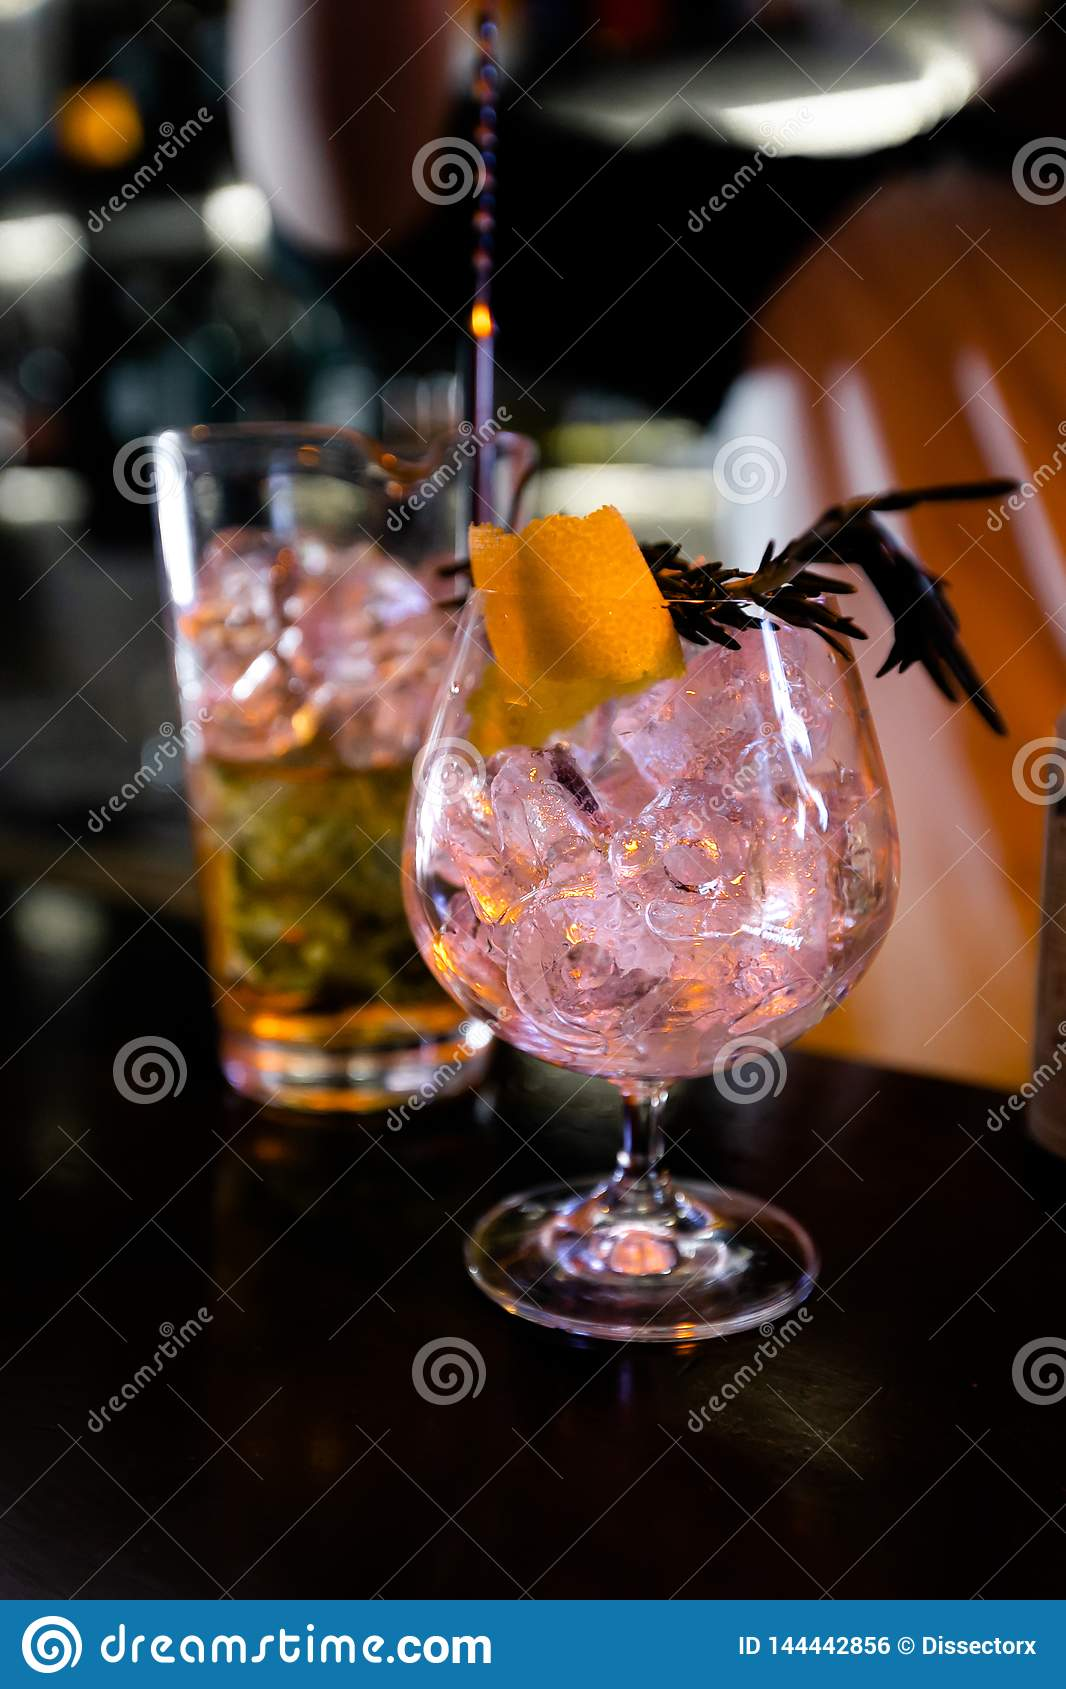 Cocktails by a barmen in a nightclub - Bartender skills are shown